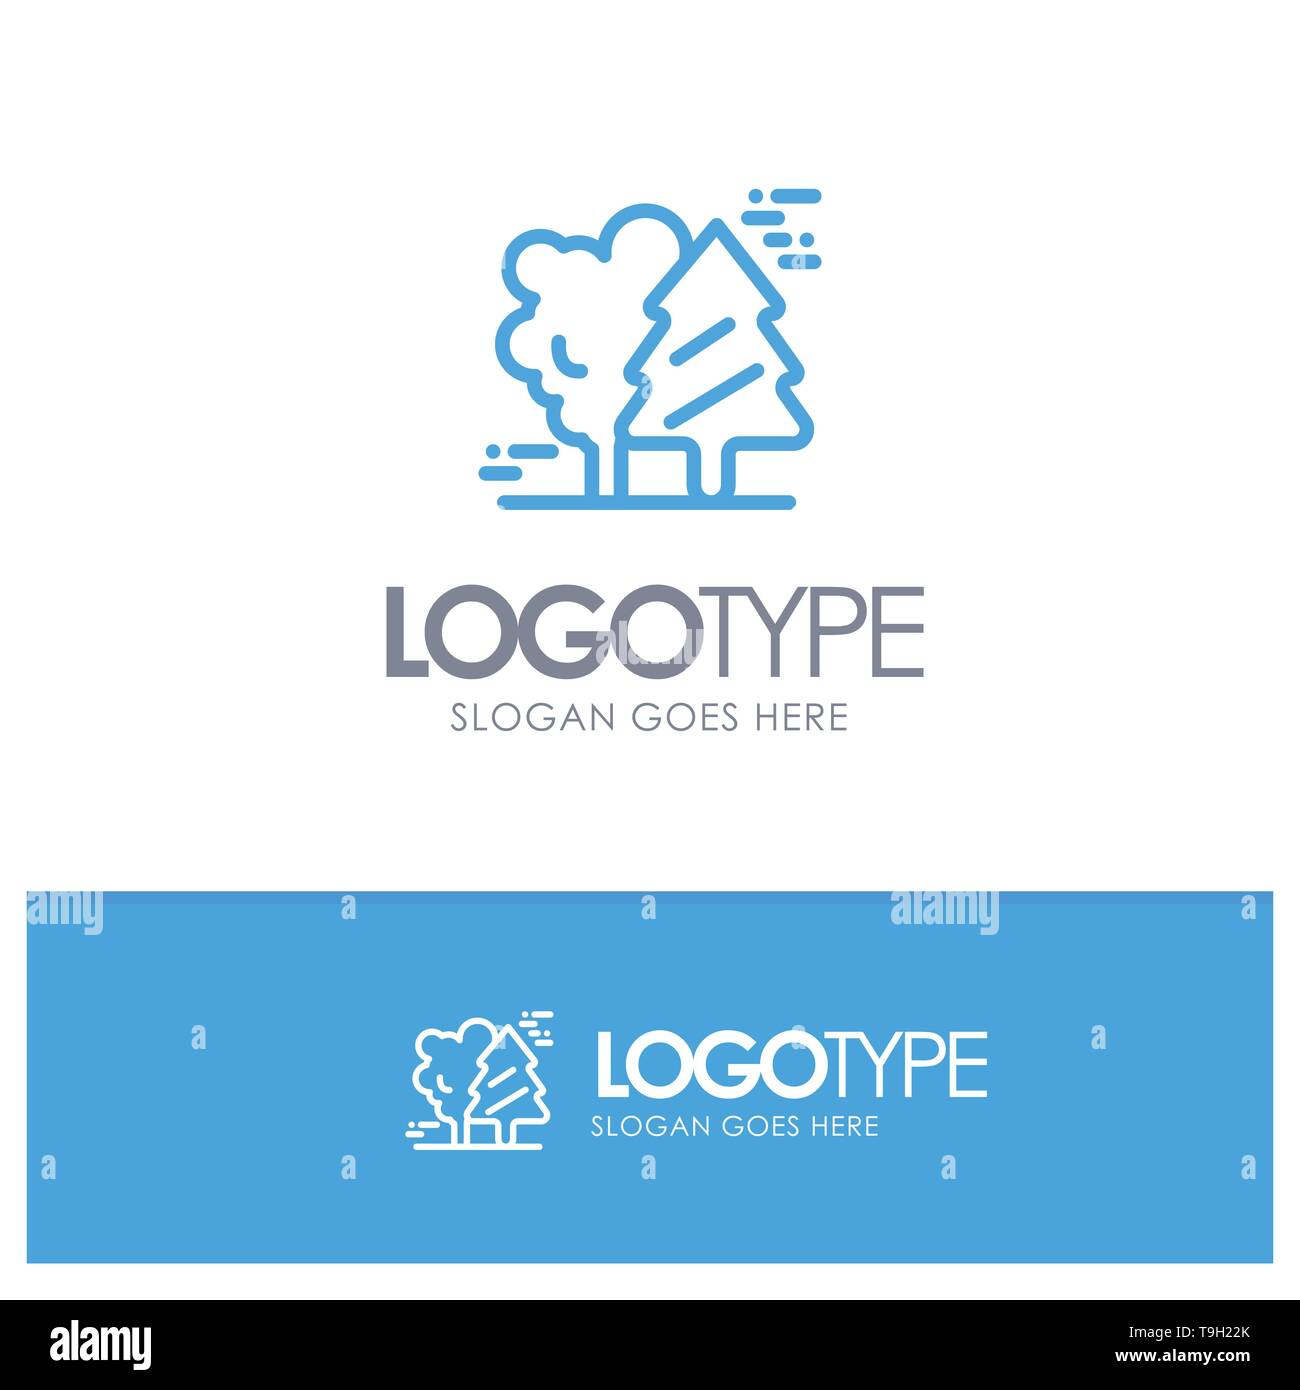 Alpine, Arctic, Canada, Pine Trees, Scandinavia Blue outLine Logo with place for tagline - Stock Image